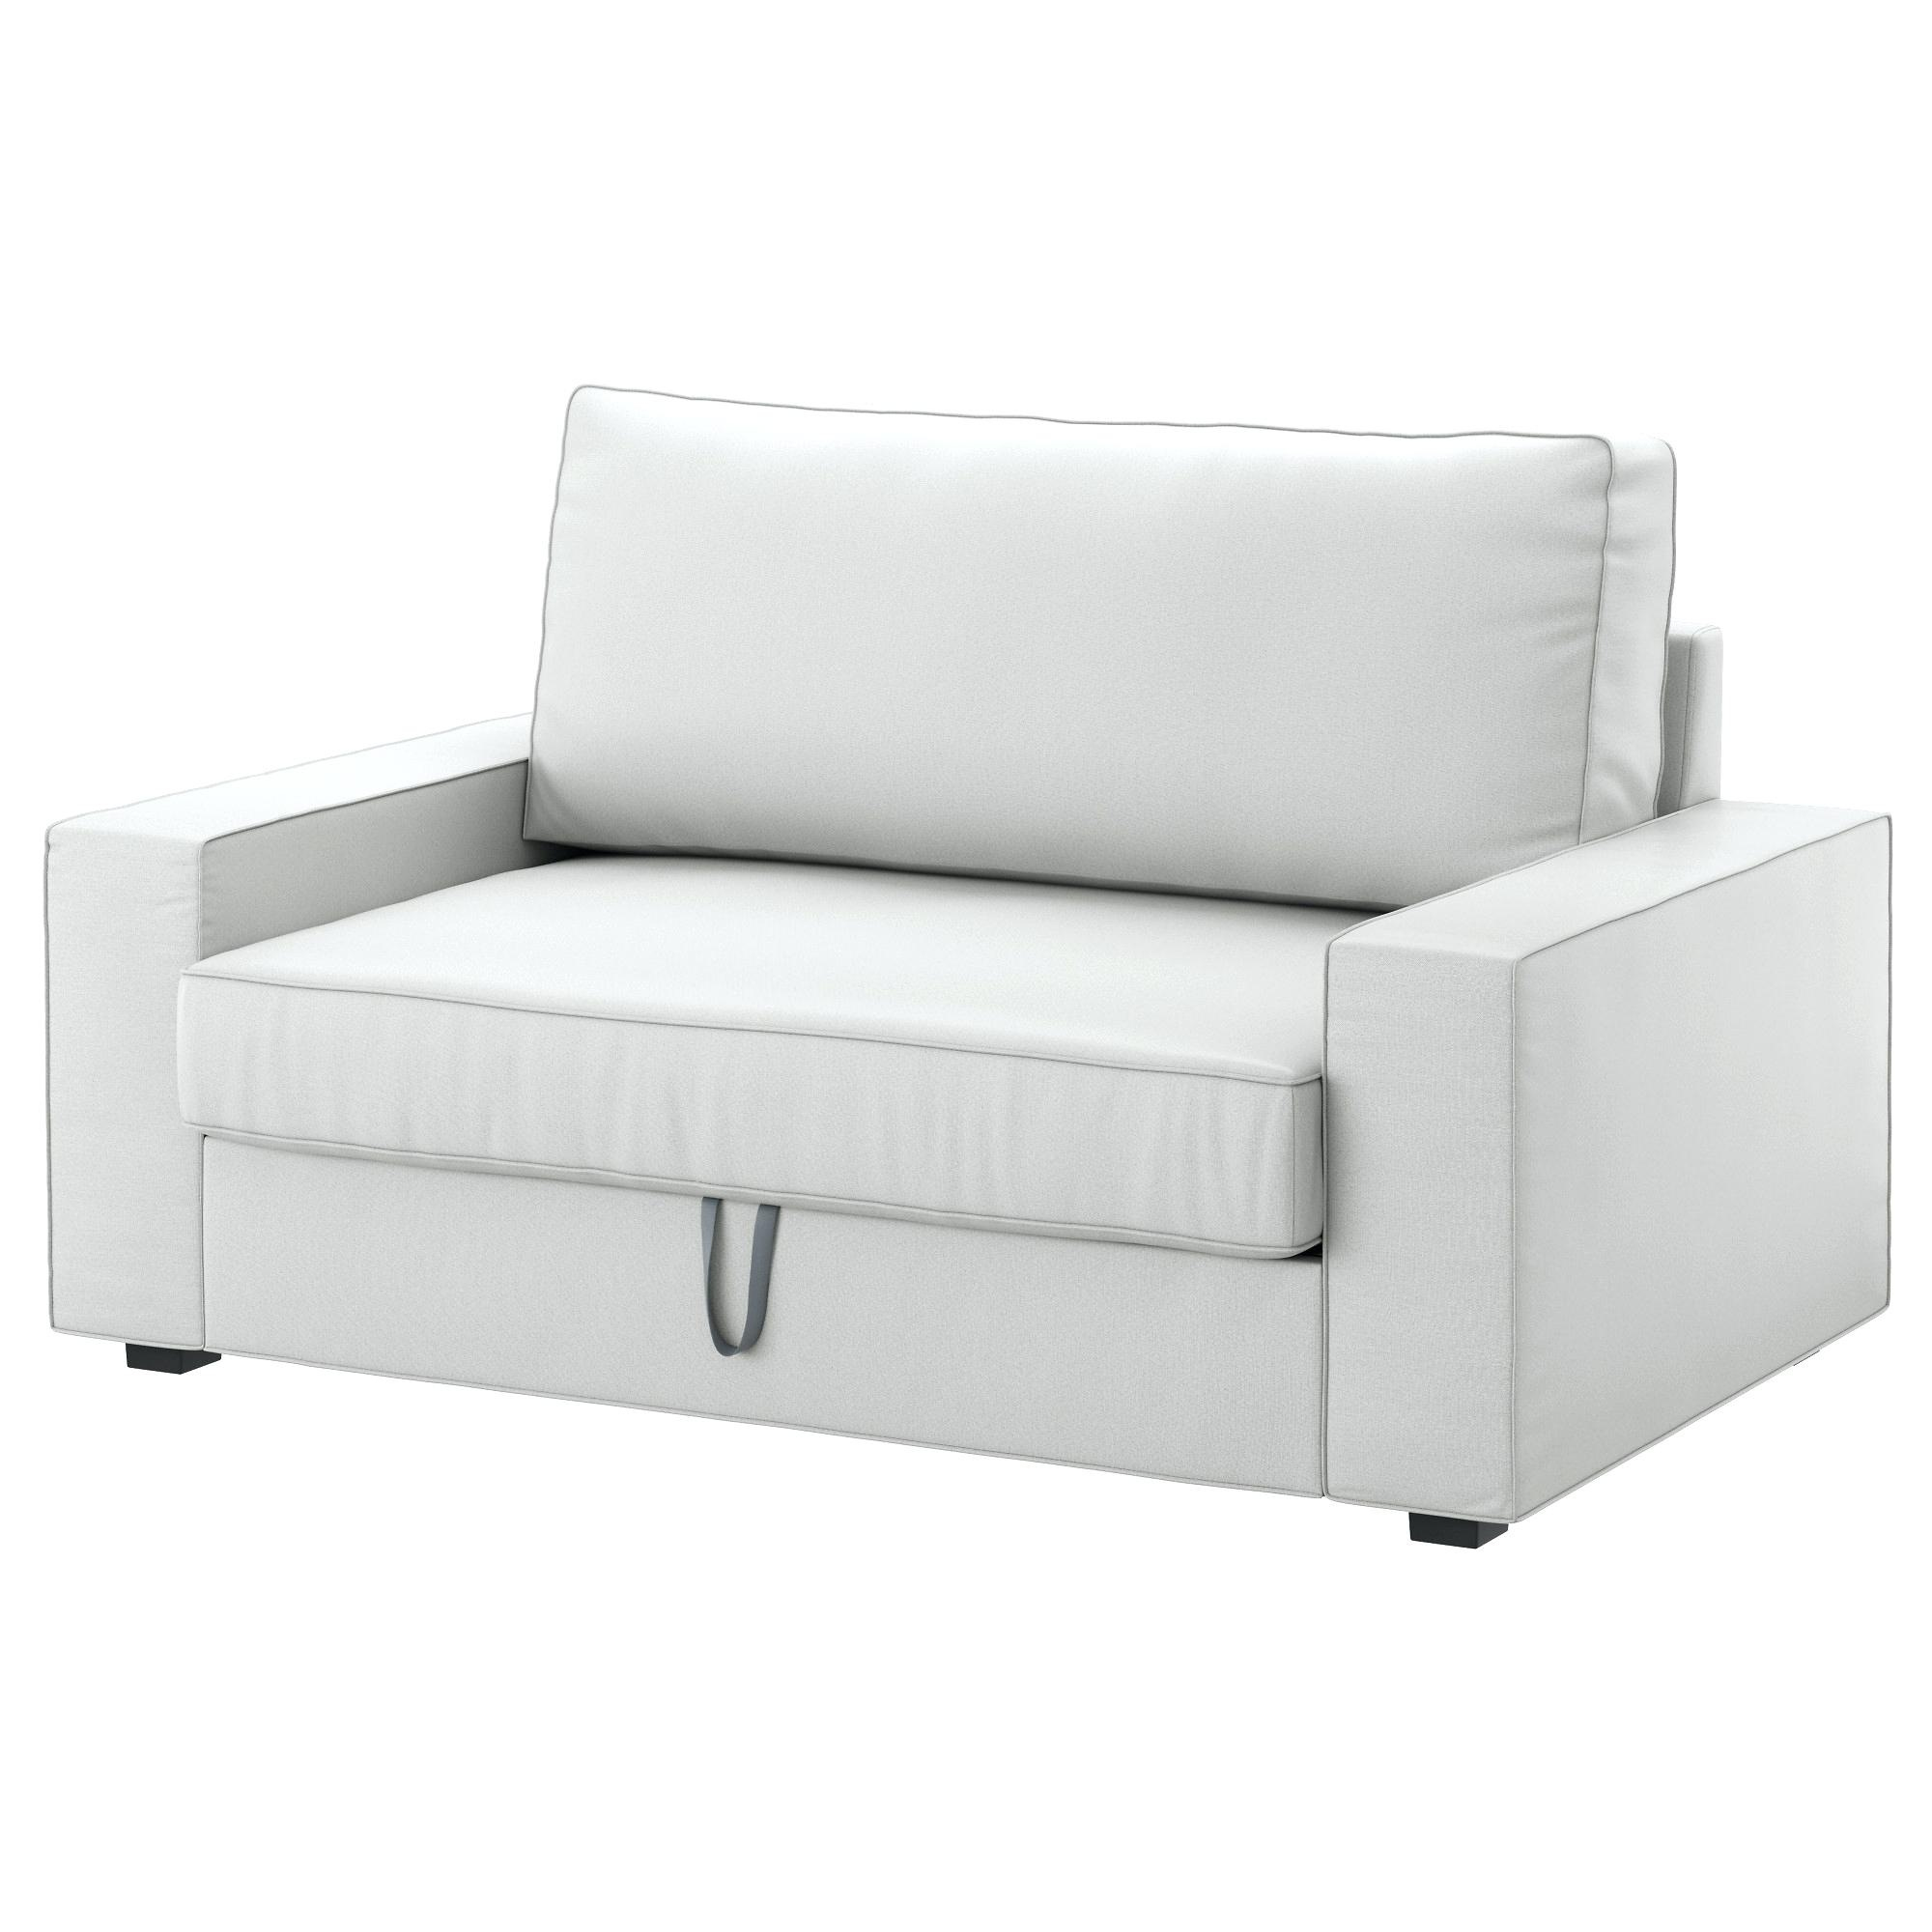 Ektorp 3 Places Beau Photos Ikea Housse Clic Clac Best Ektorp sofa Blekinge White Ikea I Want